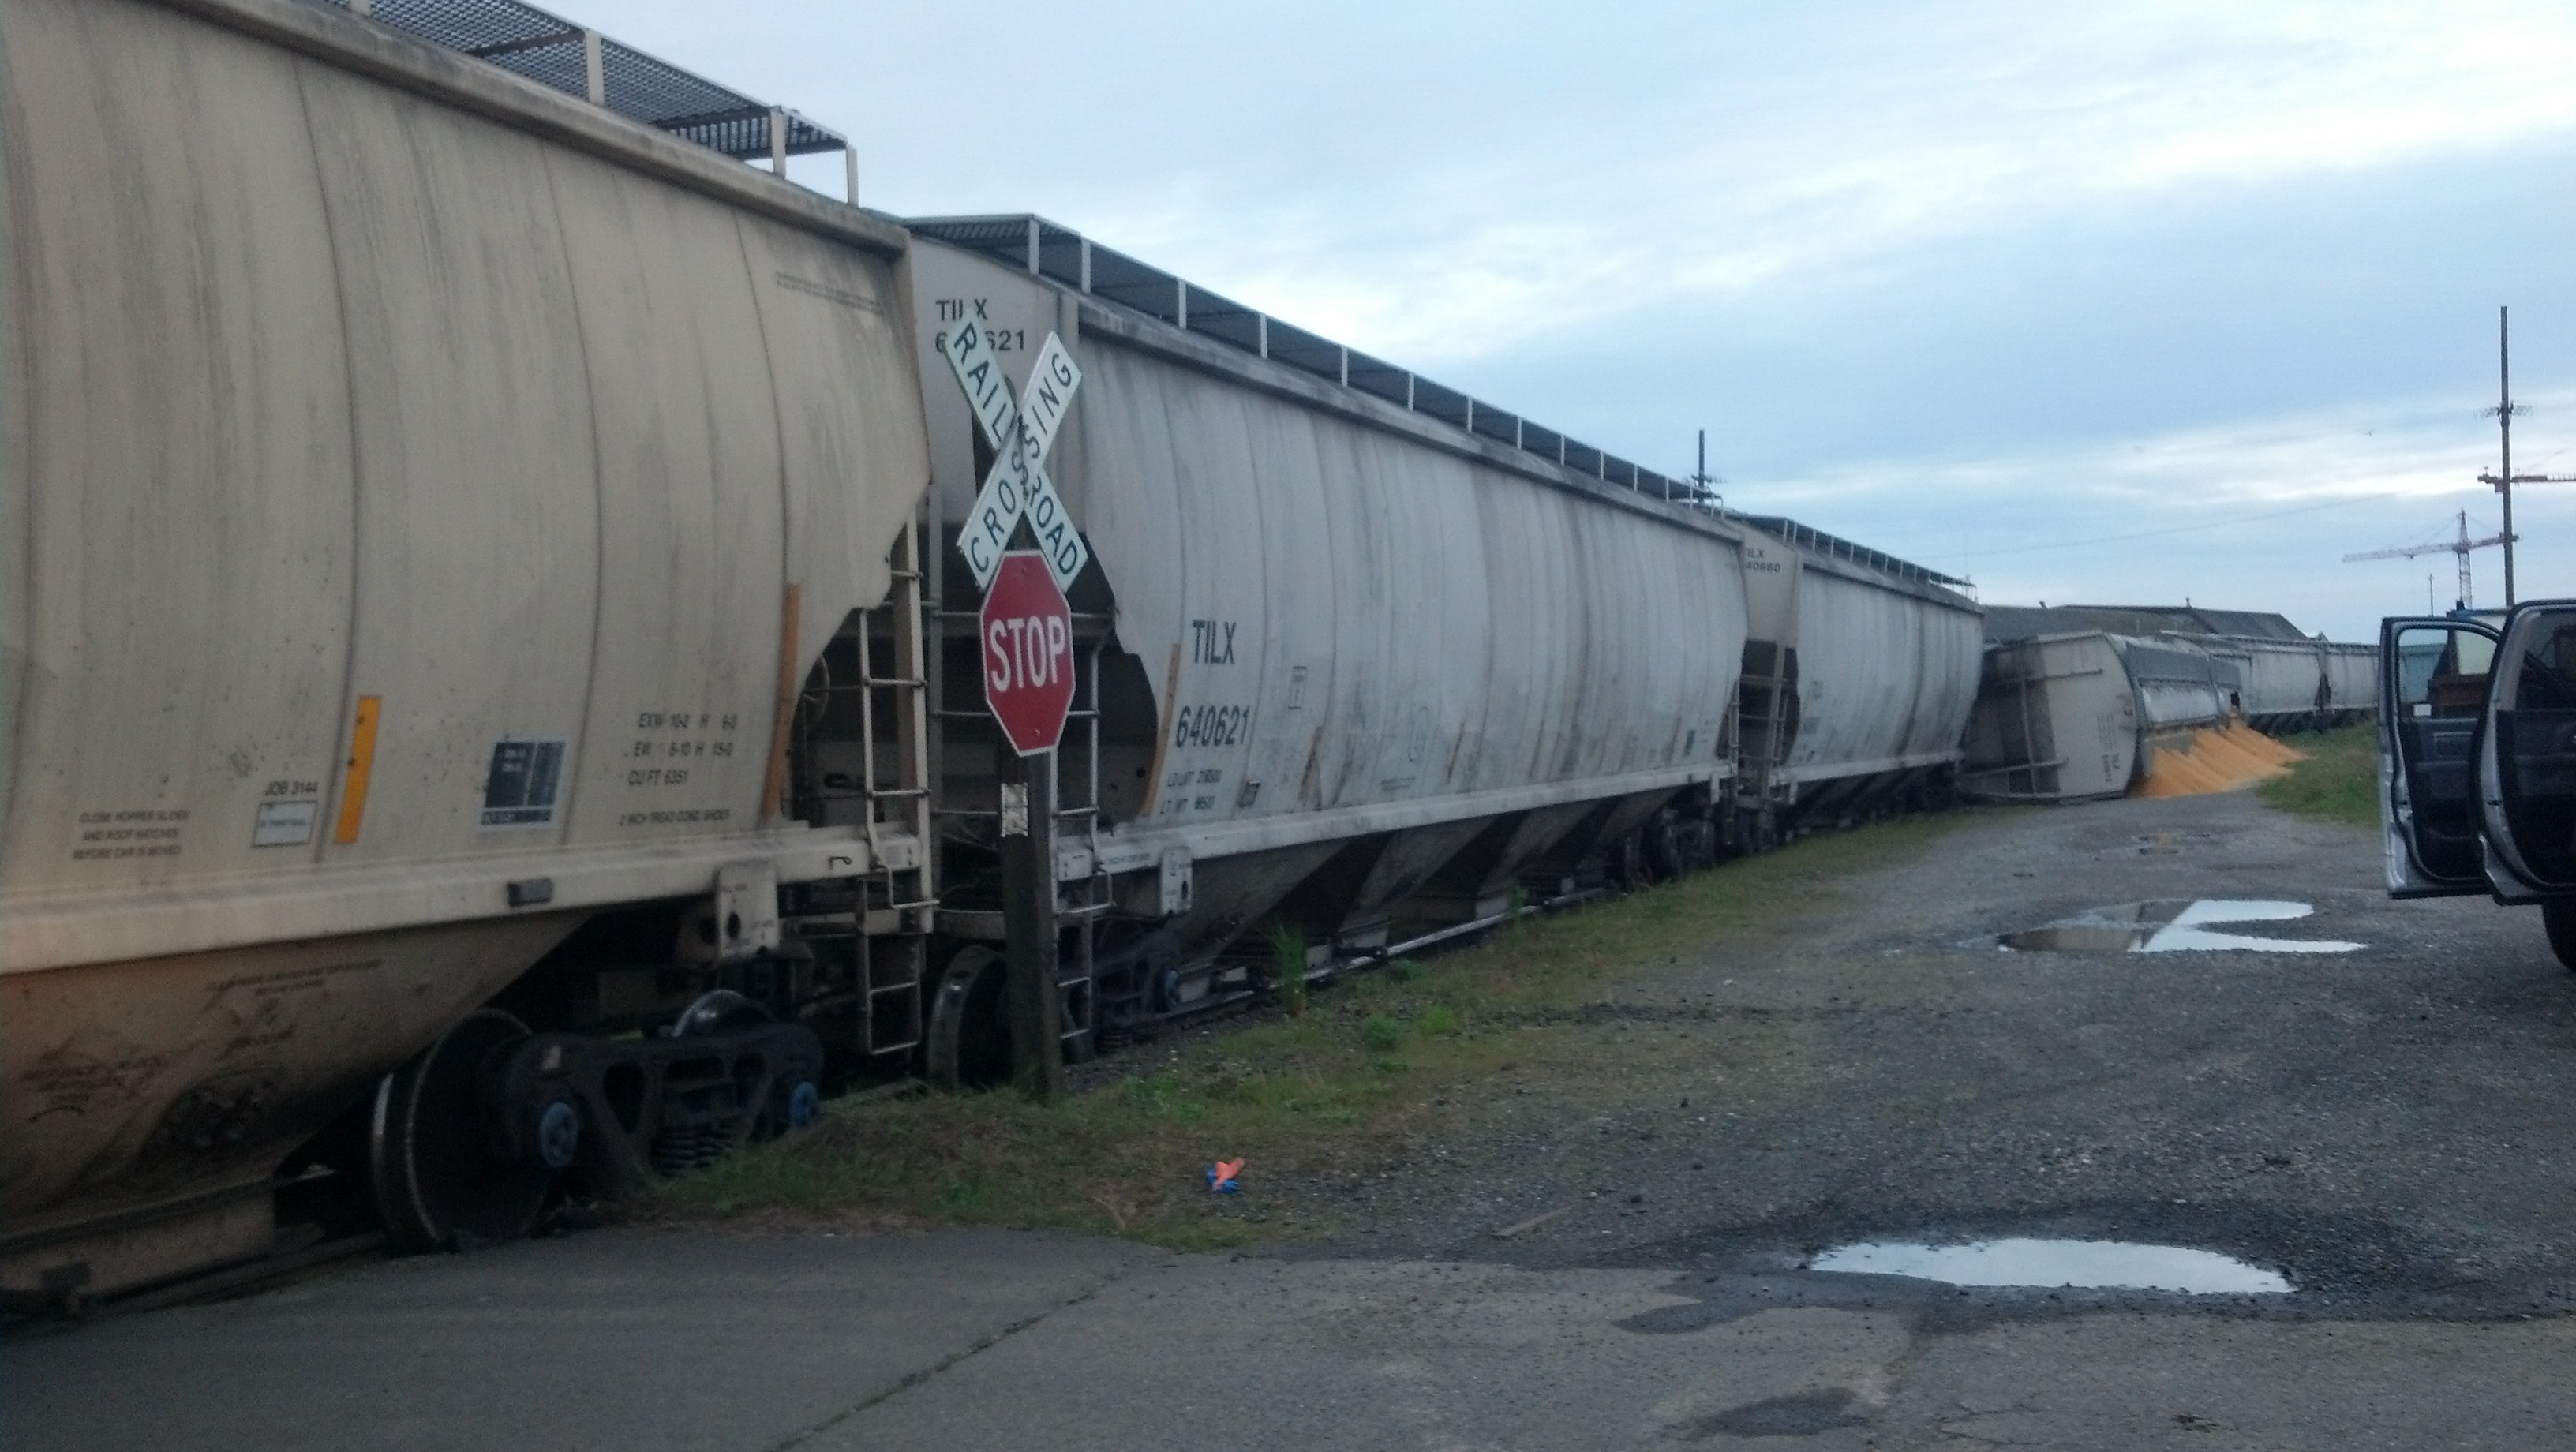 Repairs being made to tracks, roadway in Aberdeen after train derails early Tuesday